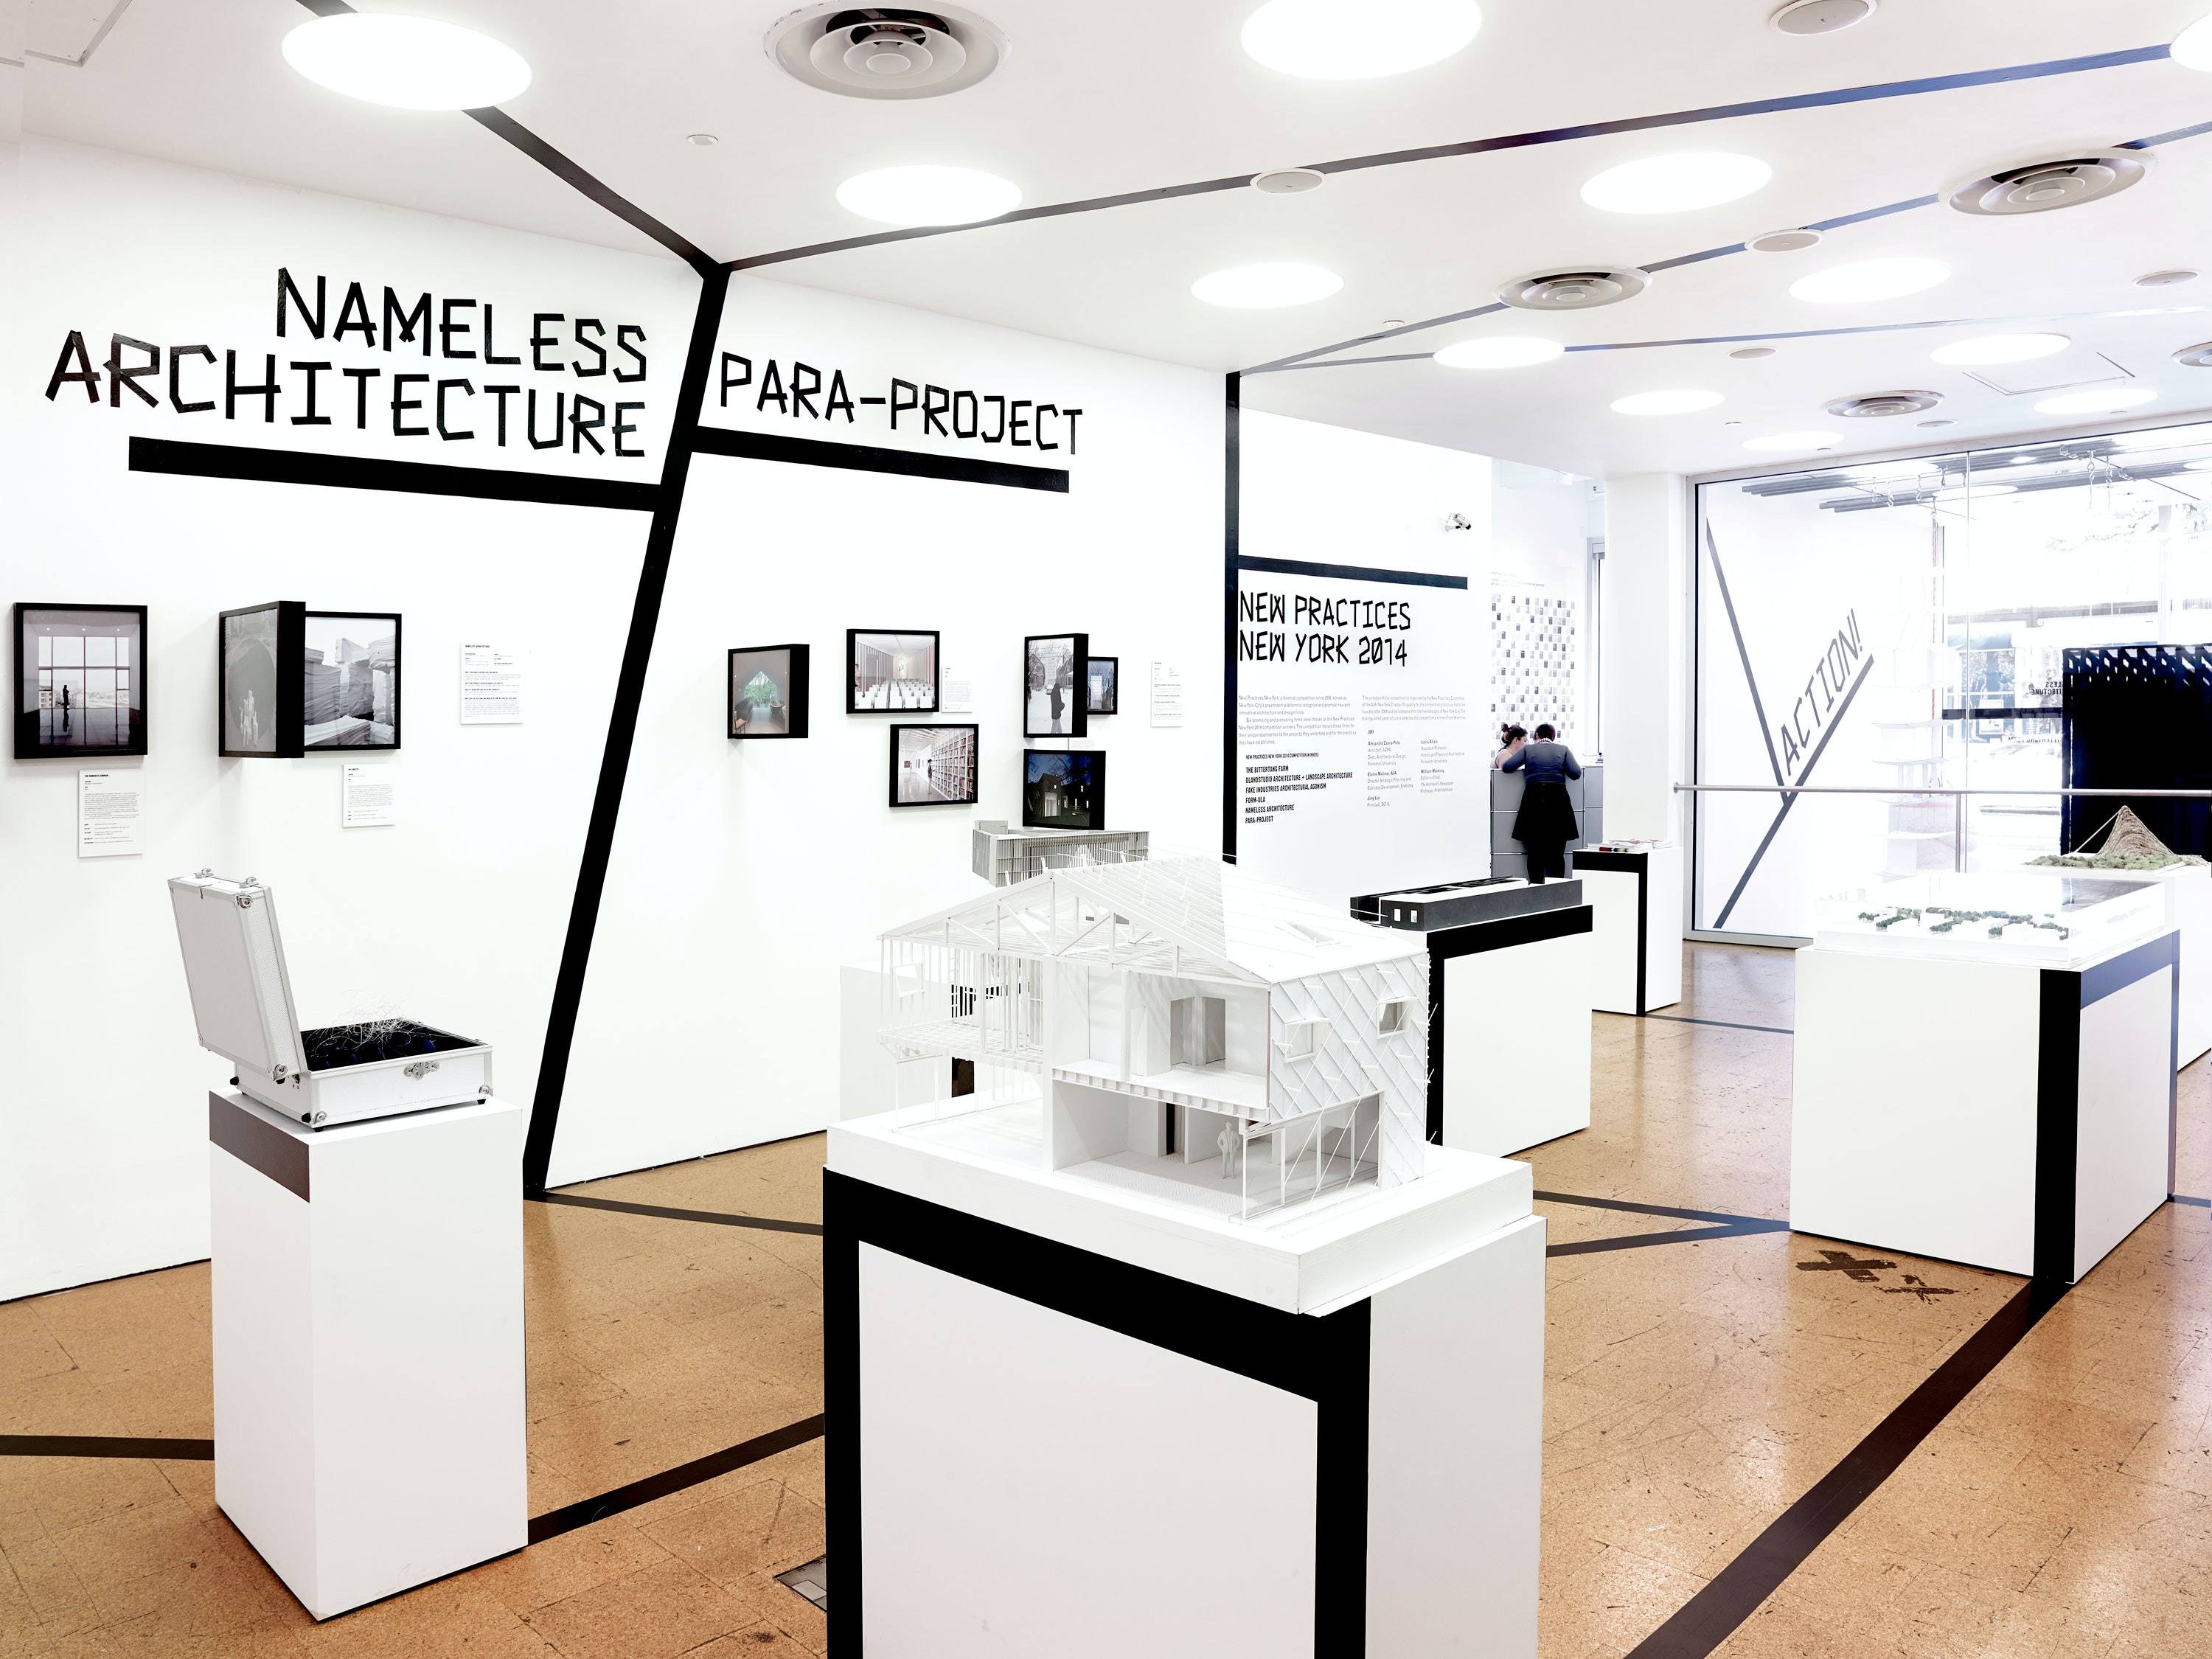 Identity And Exhibition Design For The Biennial Competition That Recognizes  And Promotes New And Innovative Architecture And Design Firms.